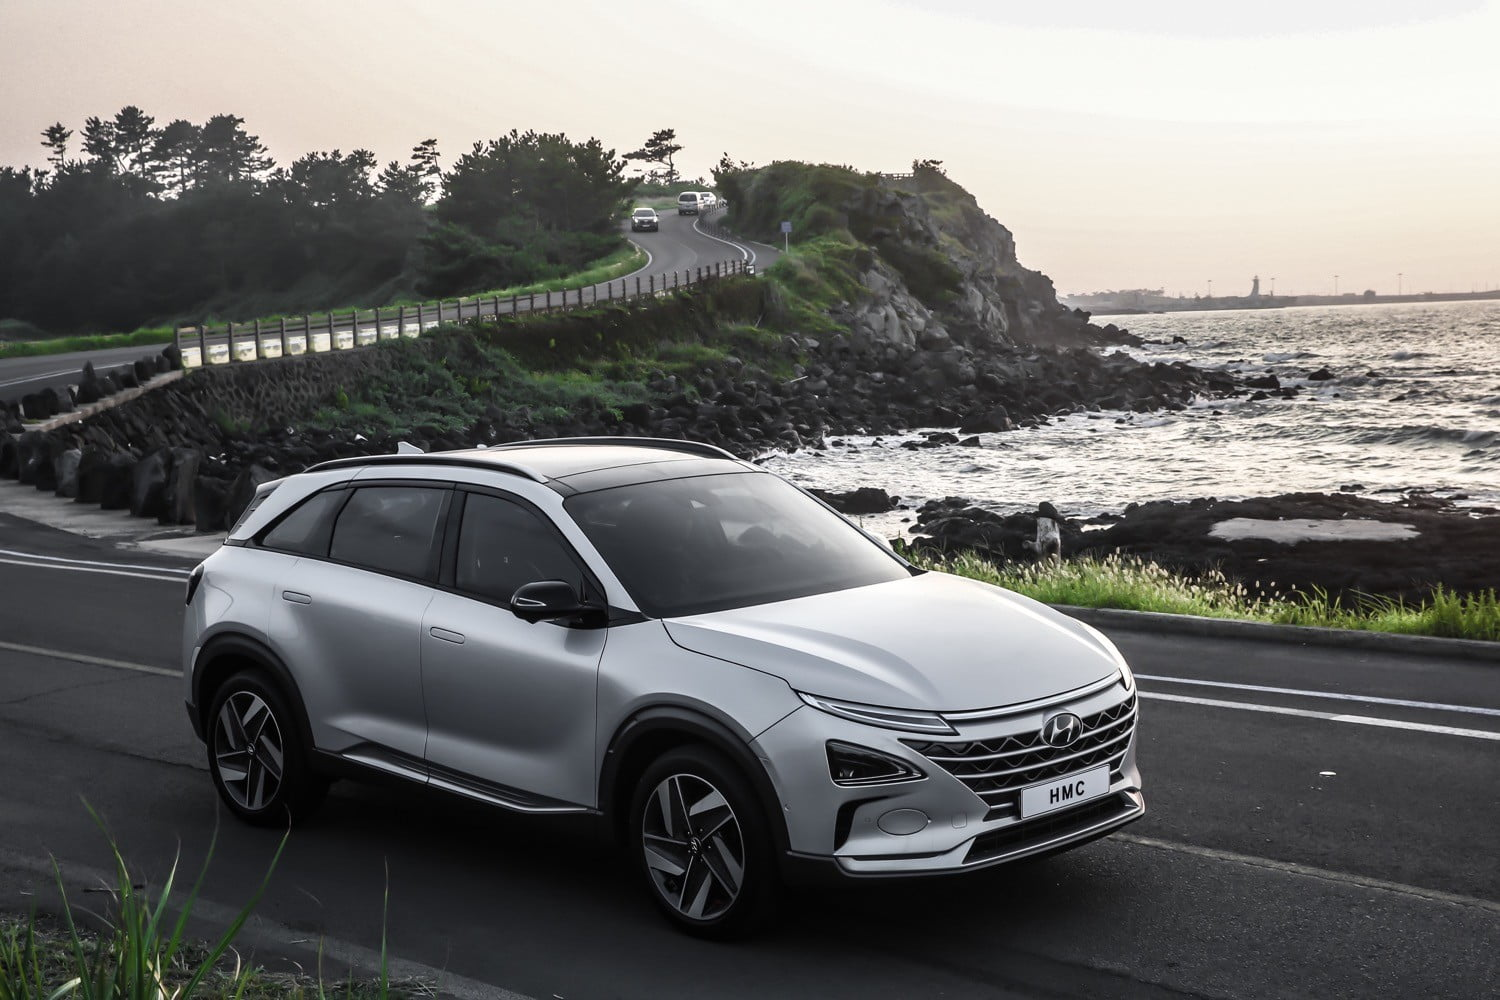 Delightful Hyundai Next Gen Fuel Cell SUV | Photos, Details, And More | Digital Trends